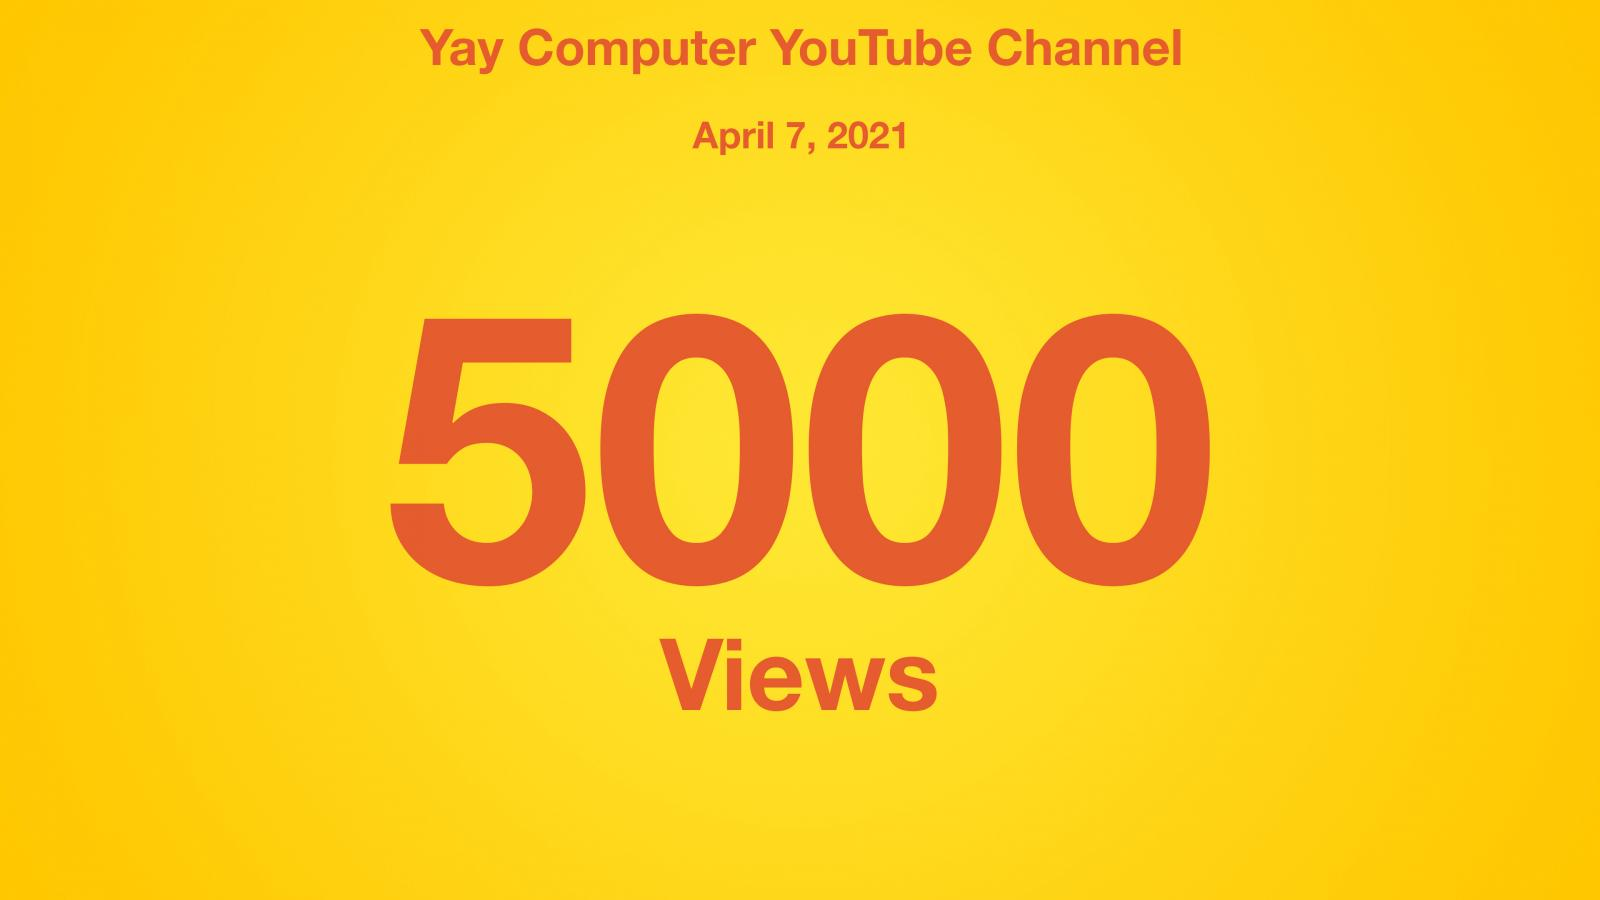 Yay Computer YouTube Channel, April 7 2021, 5000 Views